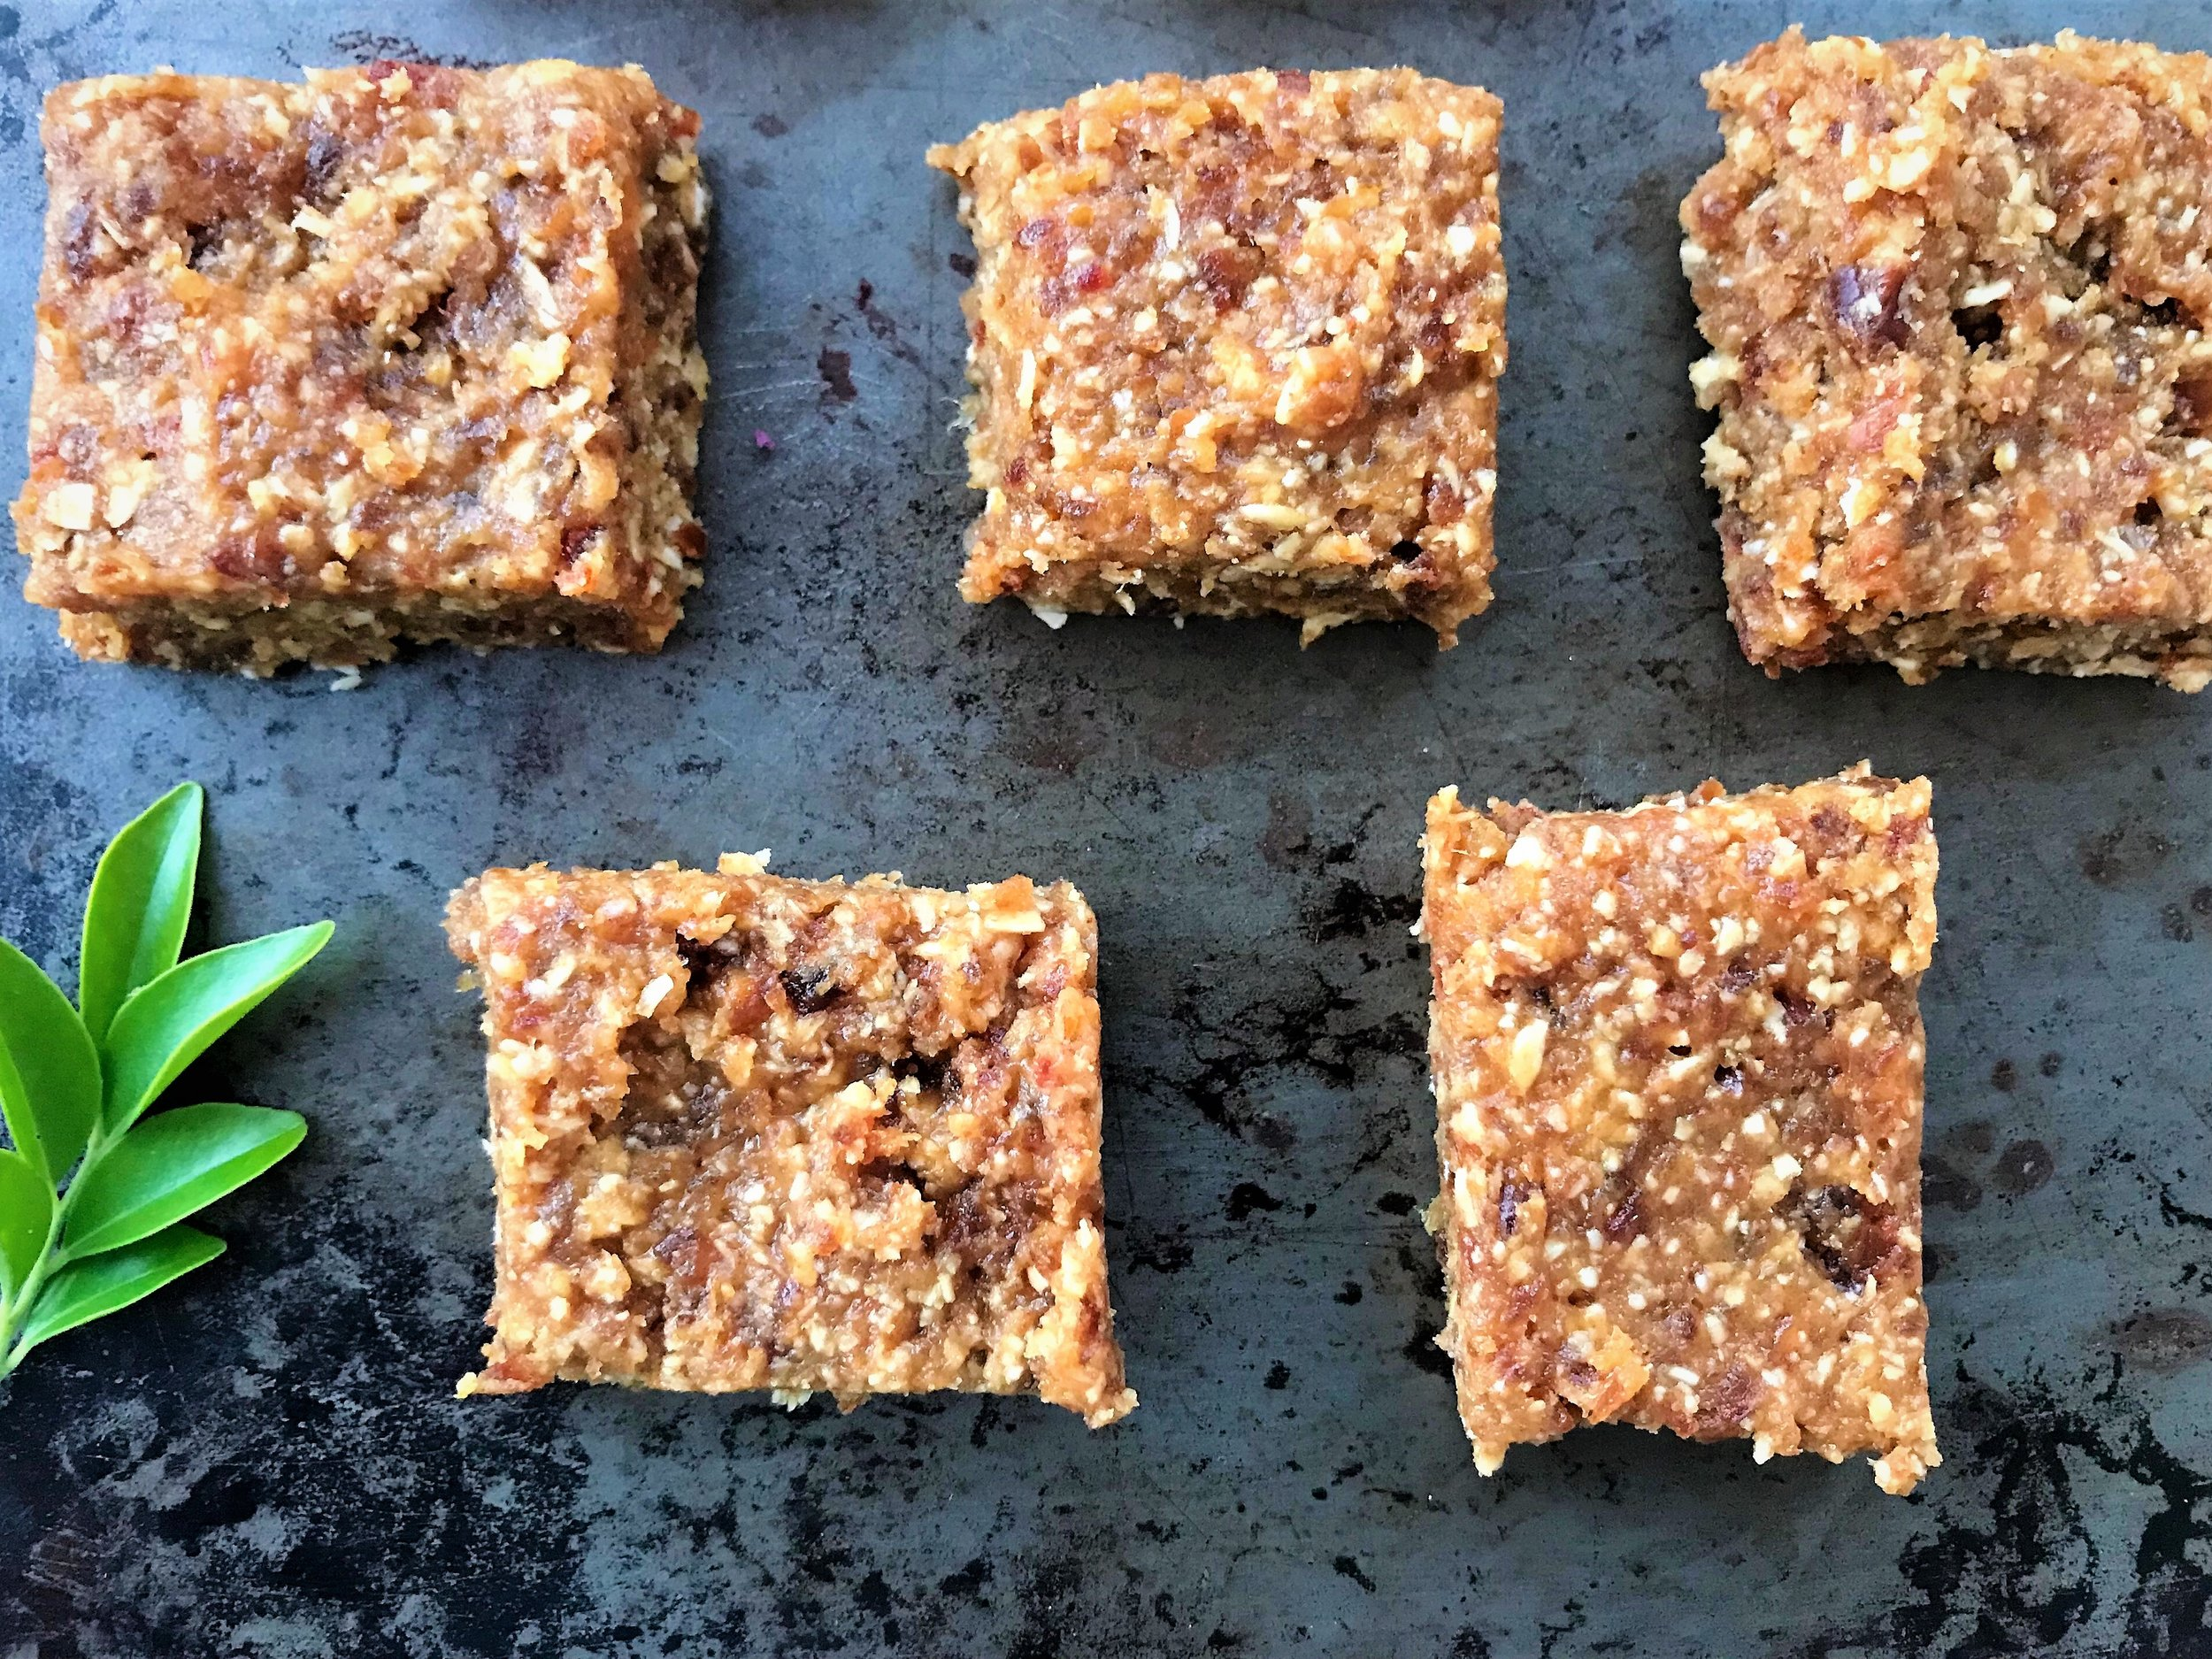 raw peanut butter, date and oat bites